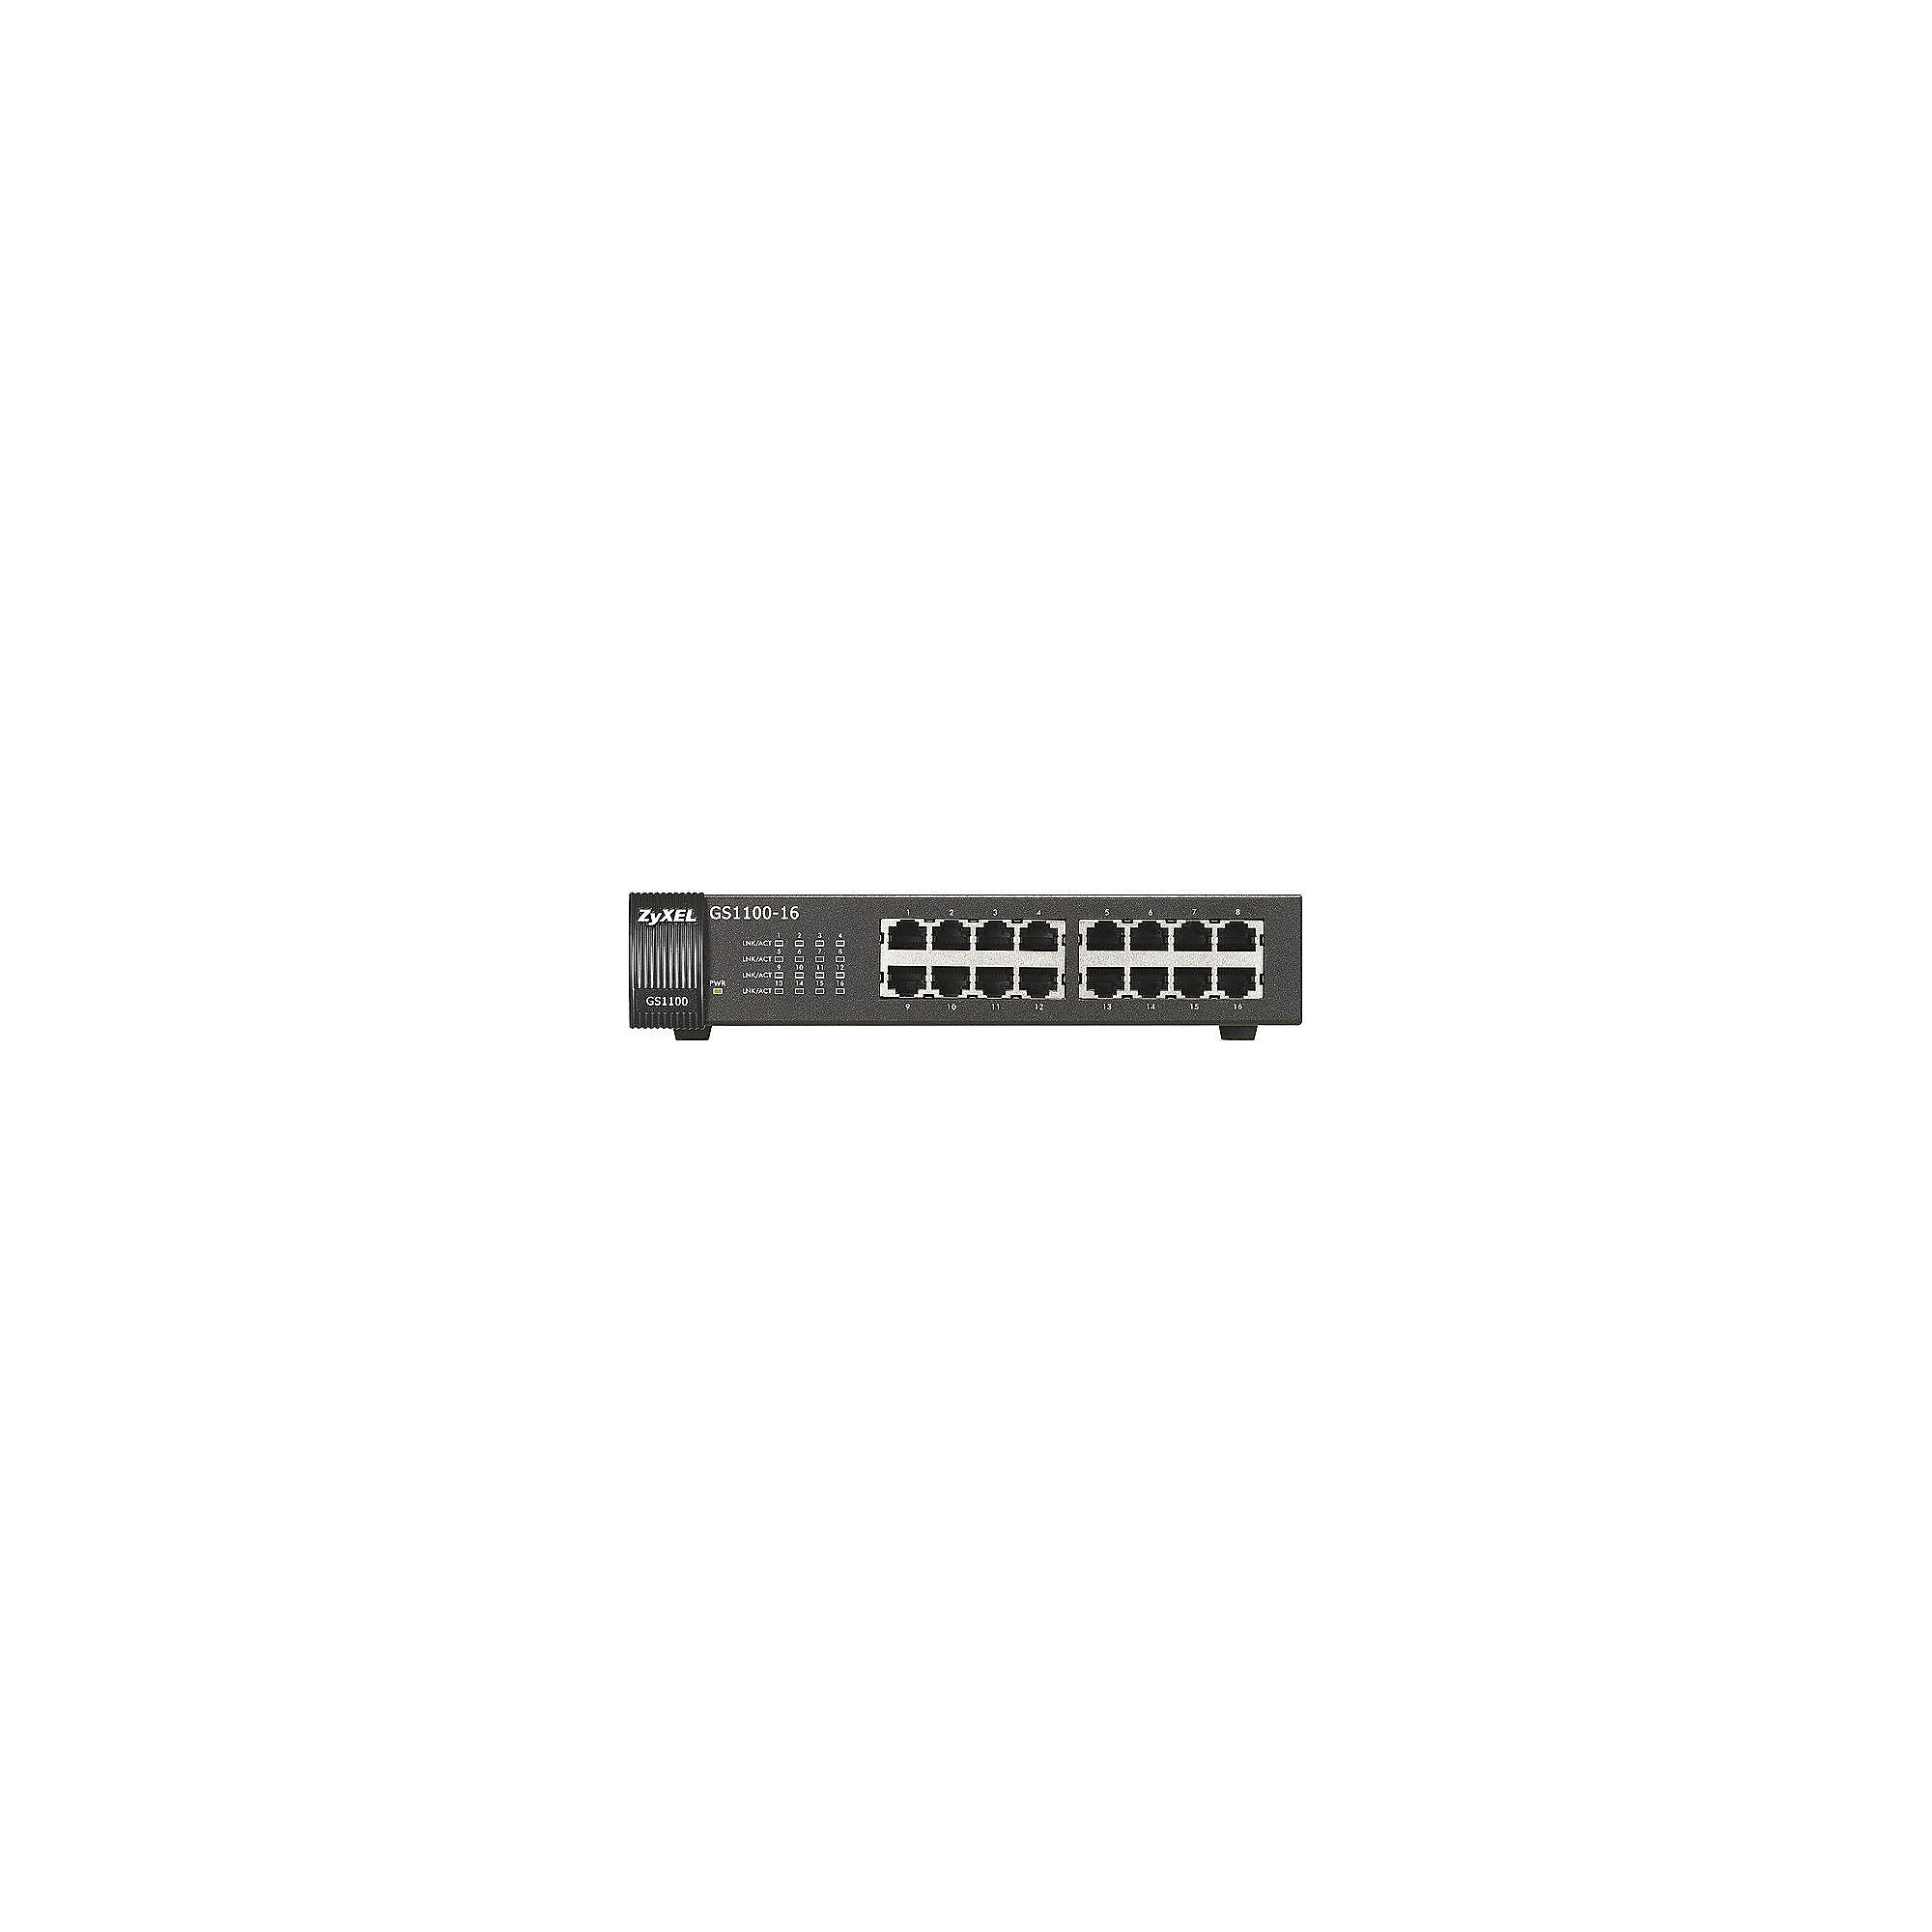 ZyXEL GS-1100 16-Port Gigabit Switch